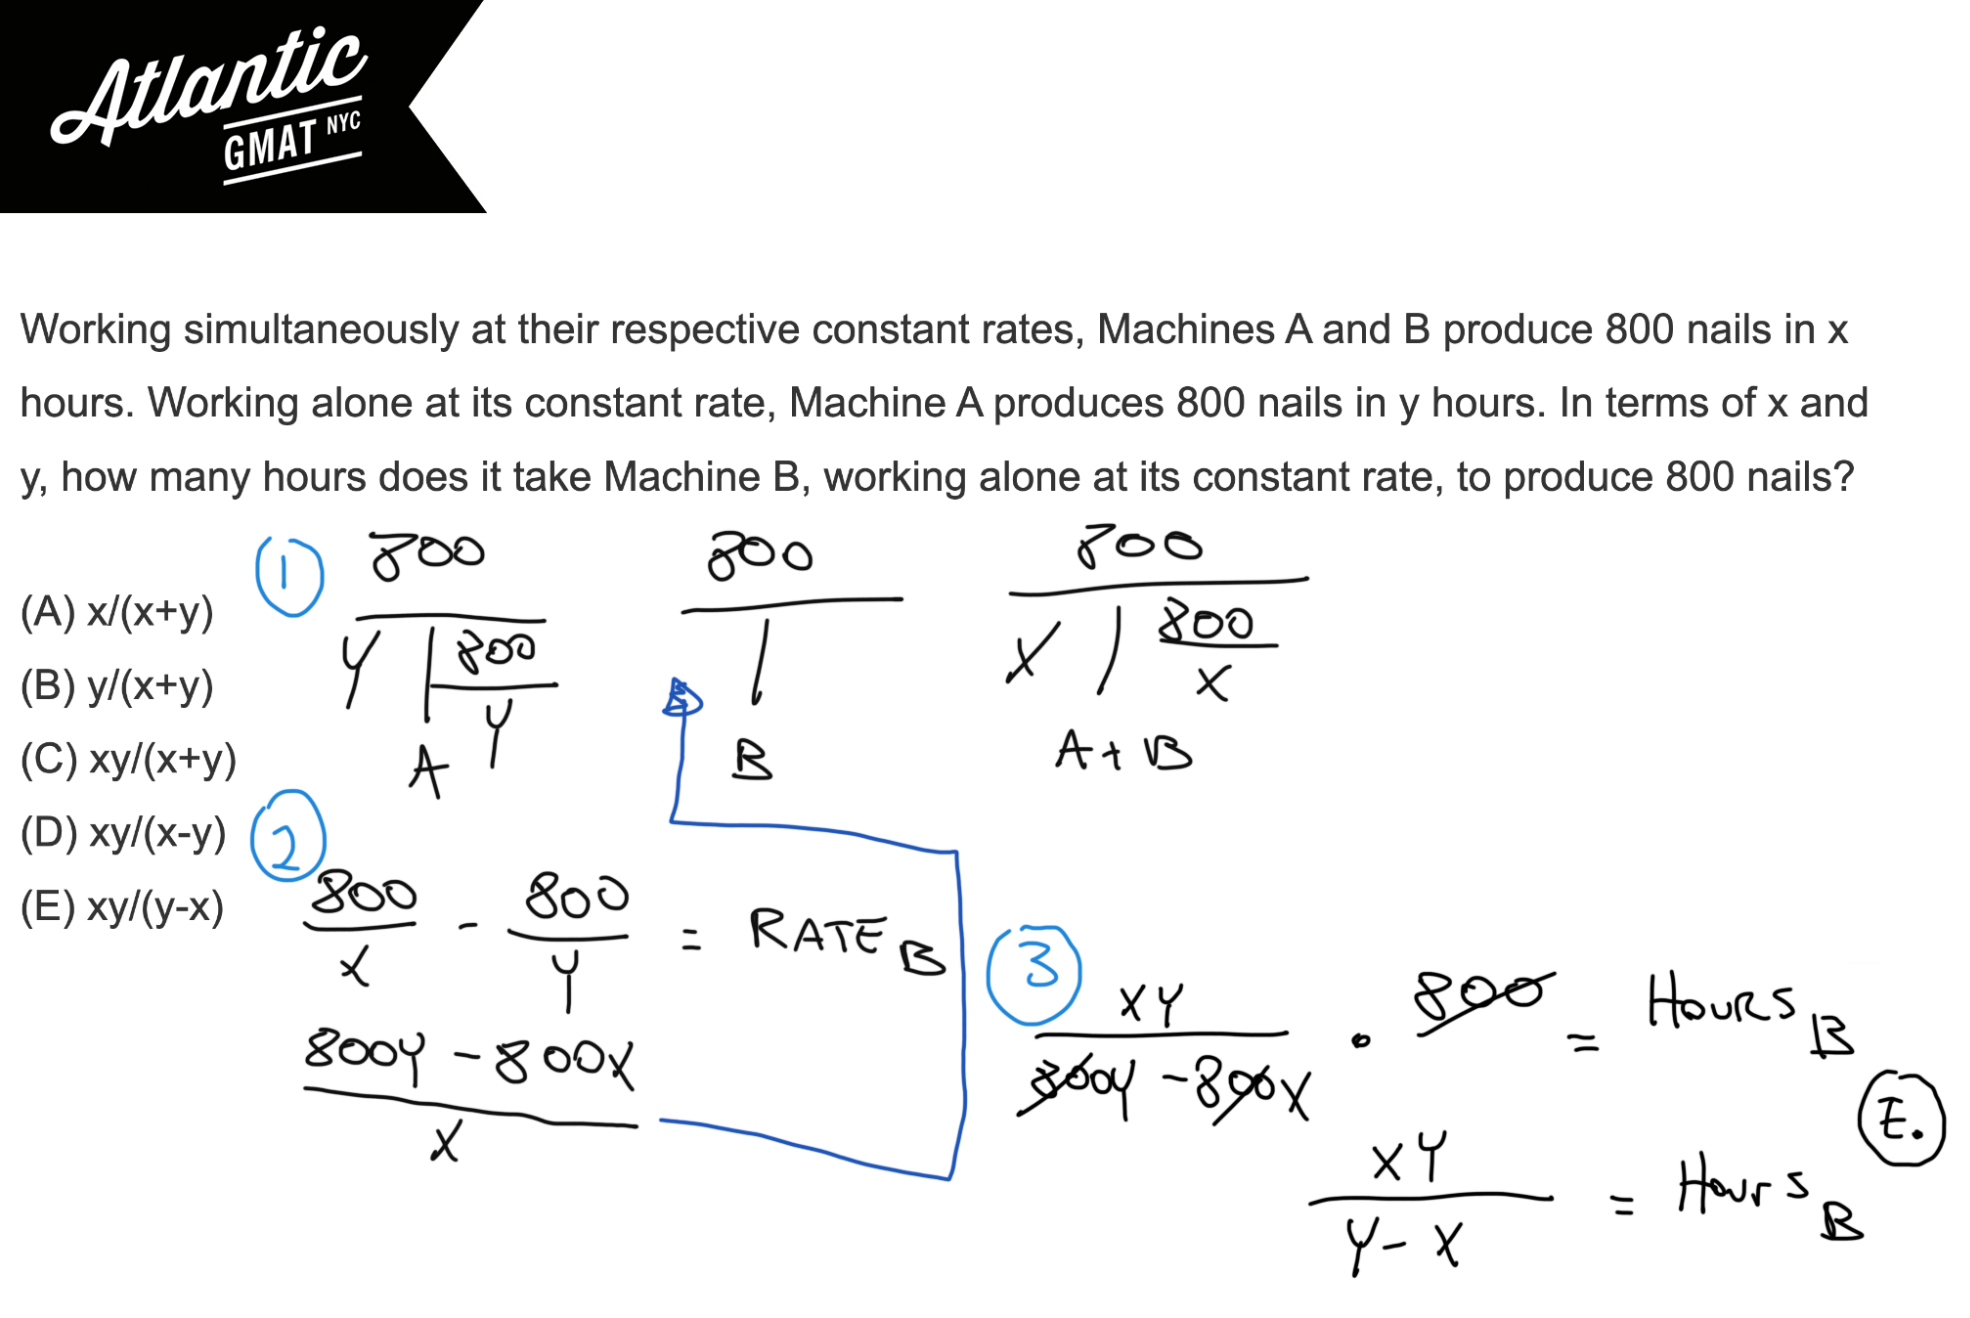 Working simultaneously at their respective constant rates, Machines A and B produce 800 nails GMAT Explanation Diagram